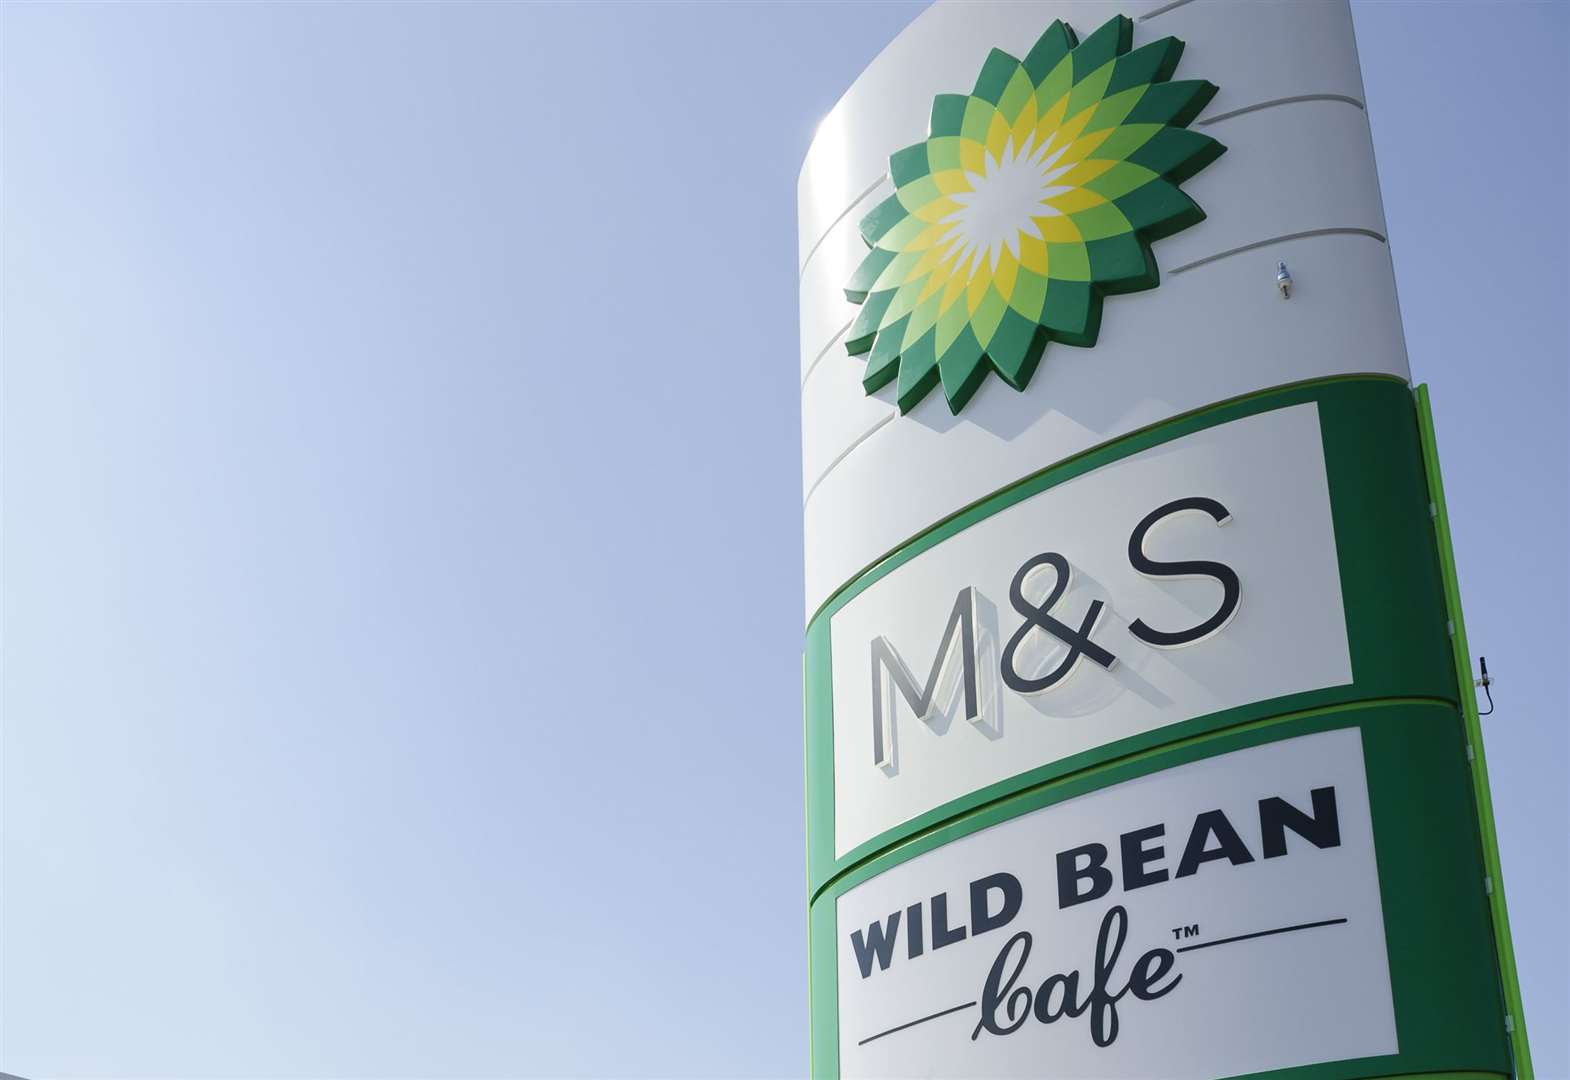 BP and M&S Simply Food set to open